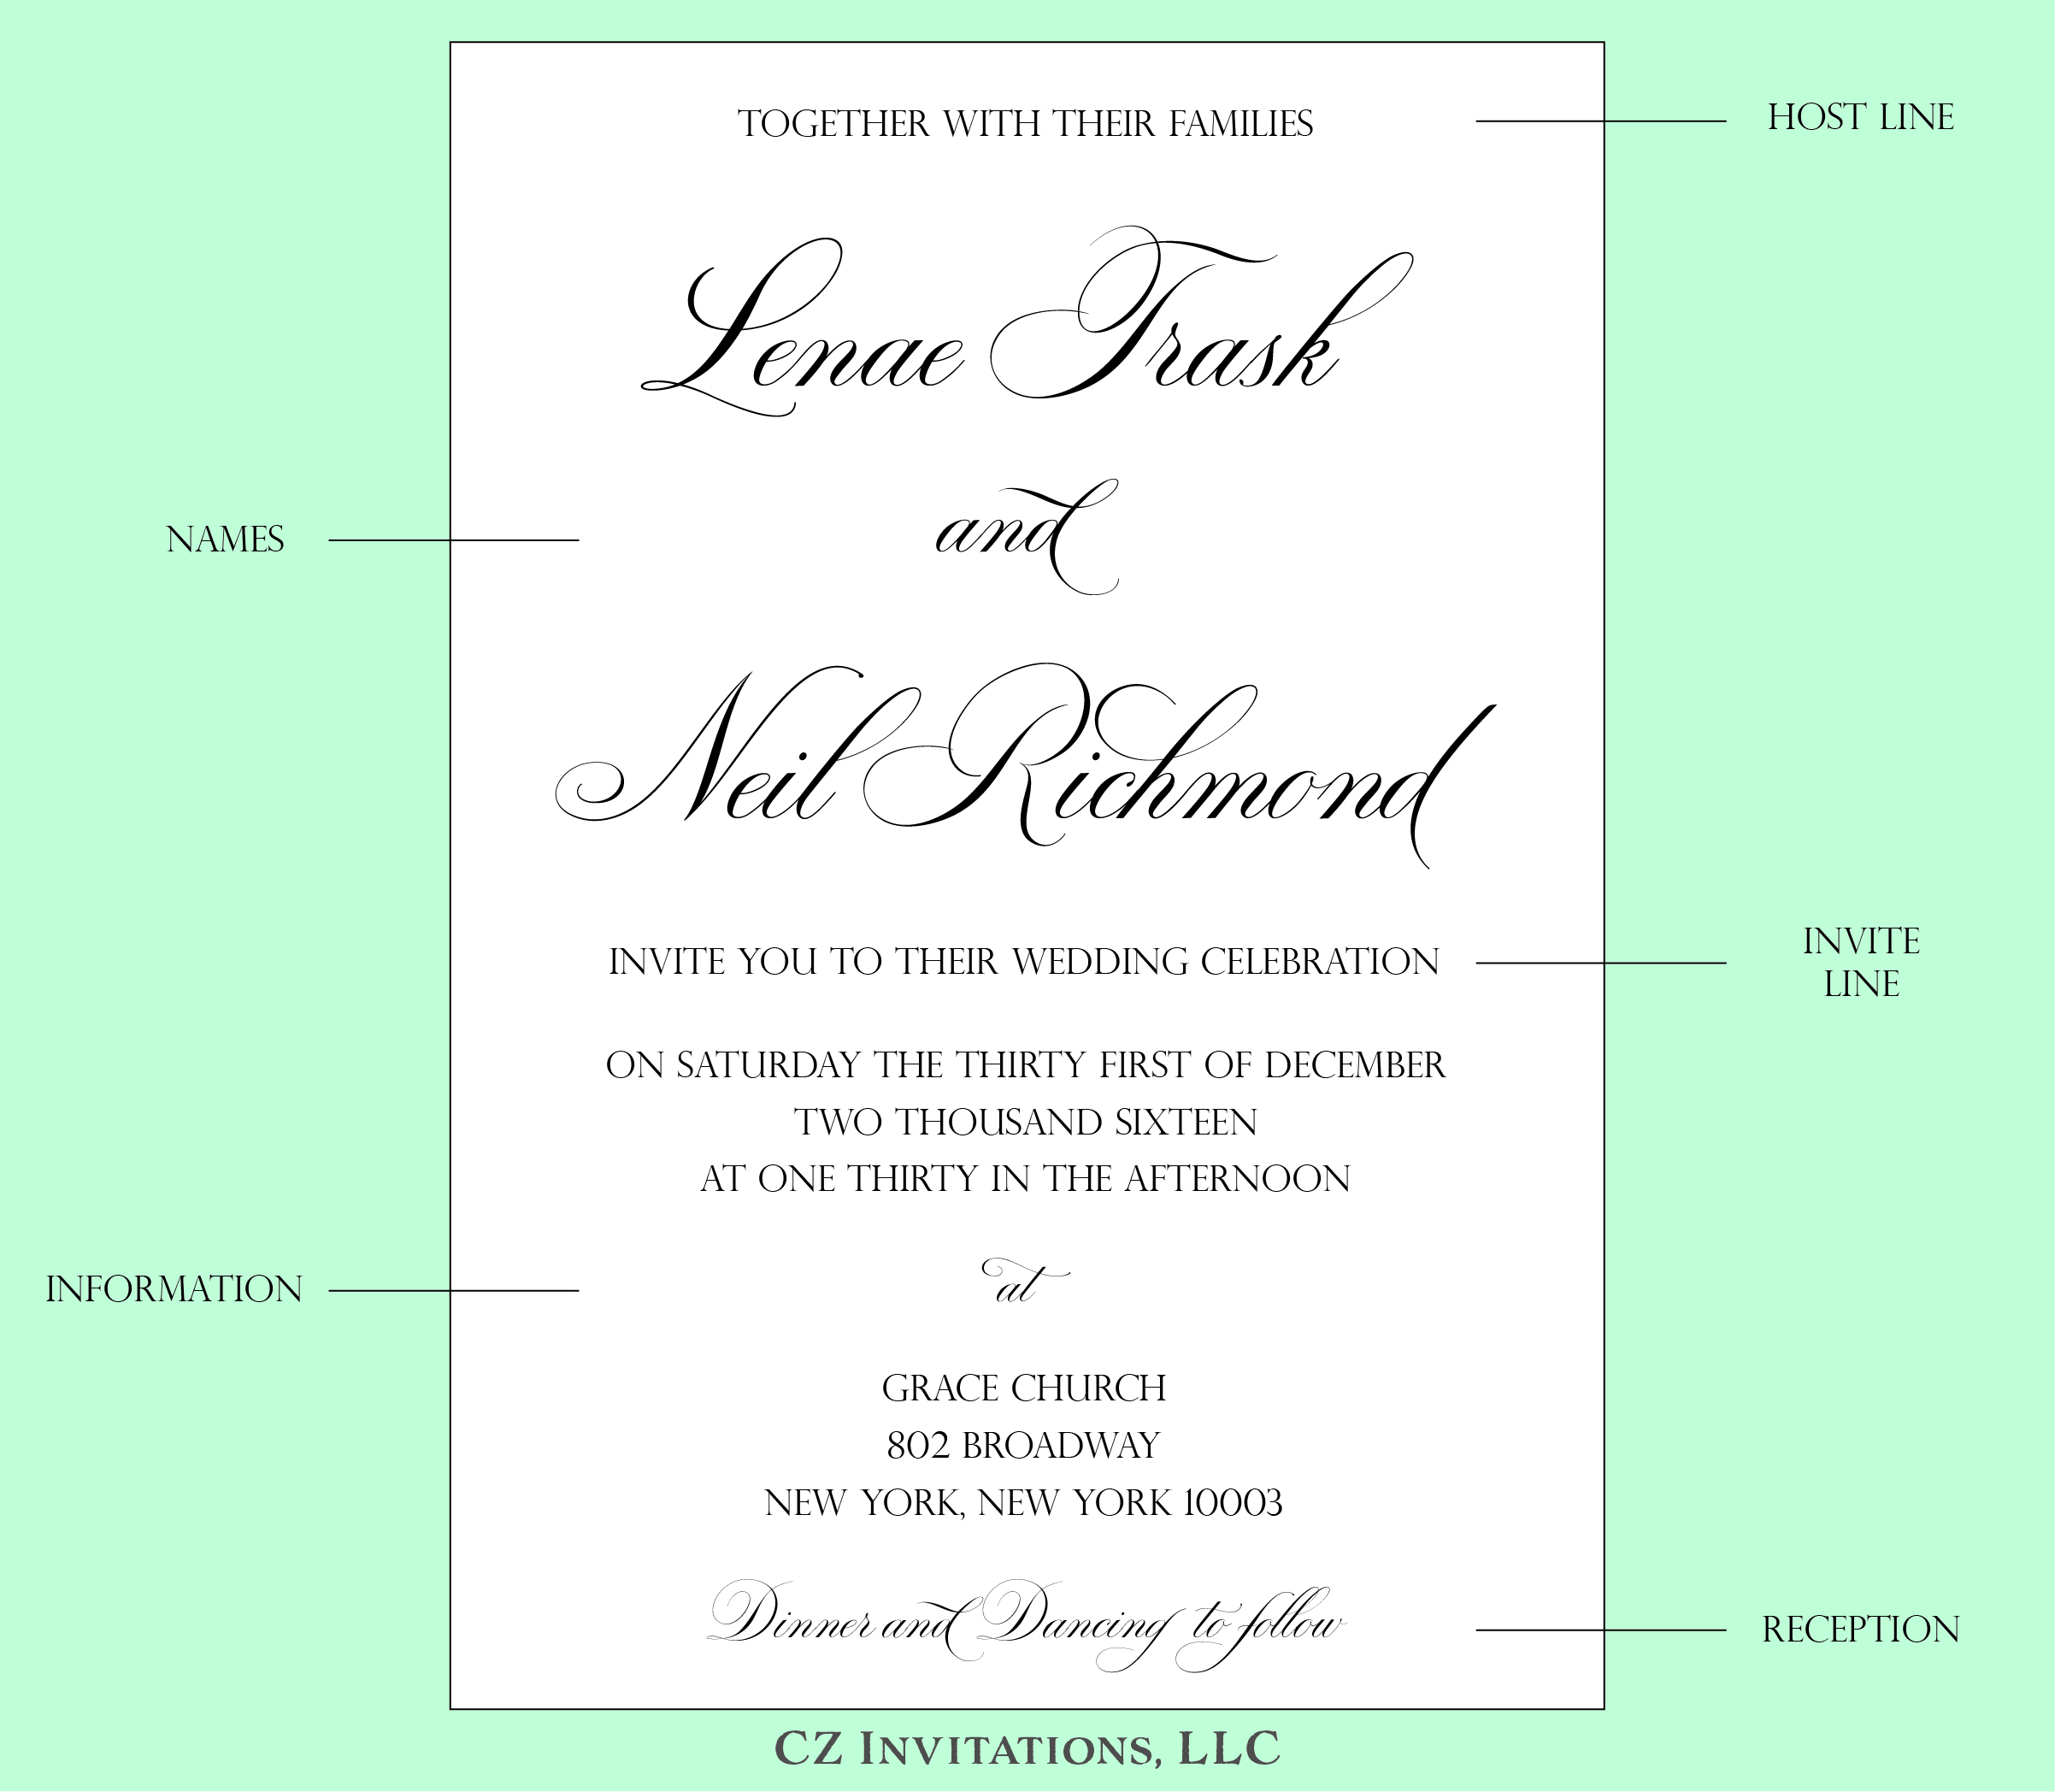 Reception Following Ceremony Wording: How To: Wedding Invitation Wording